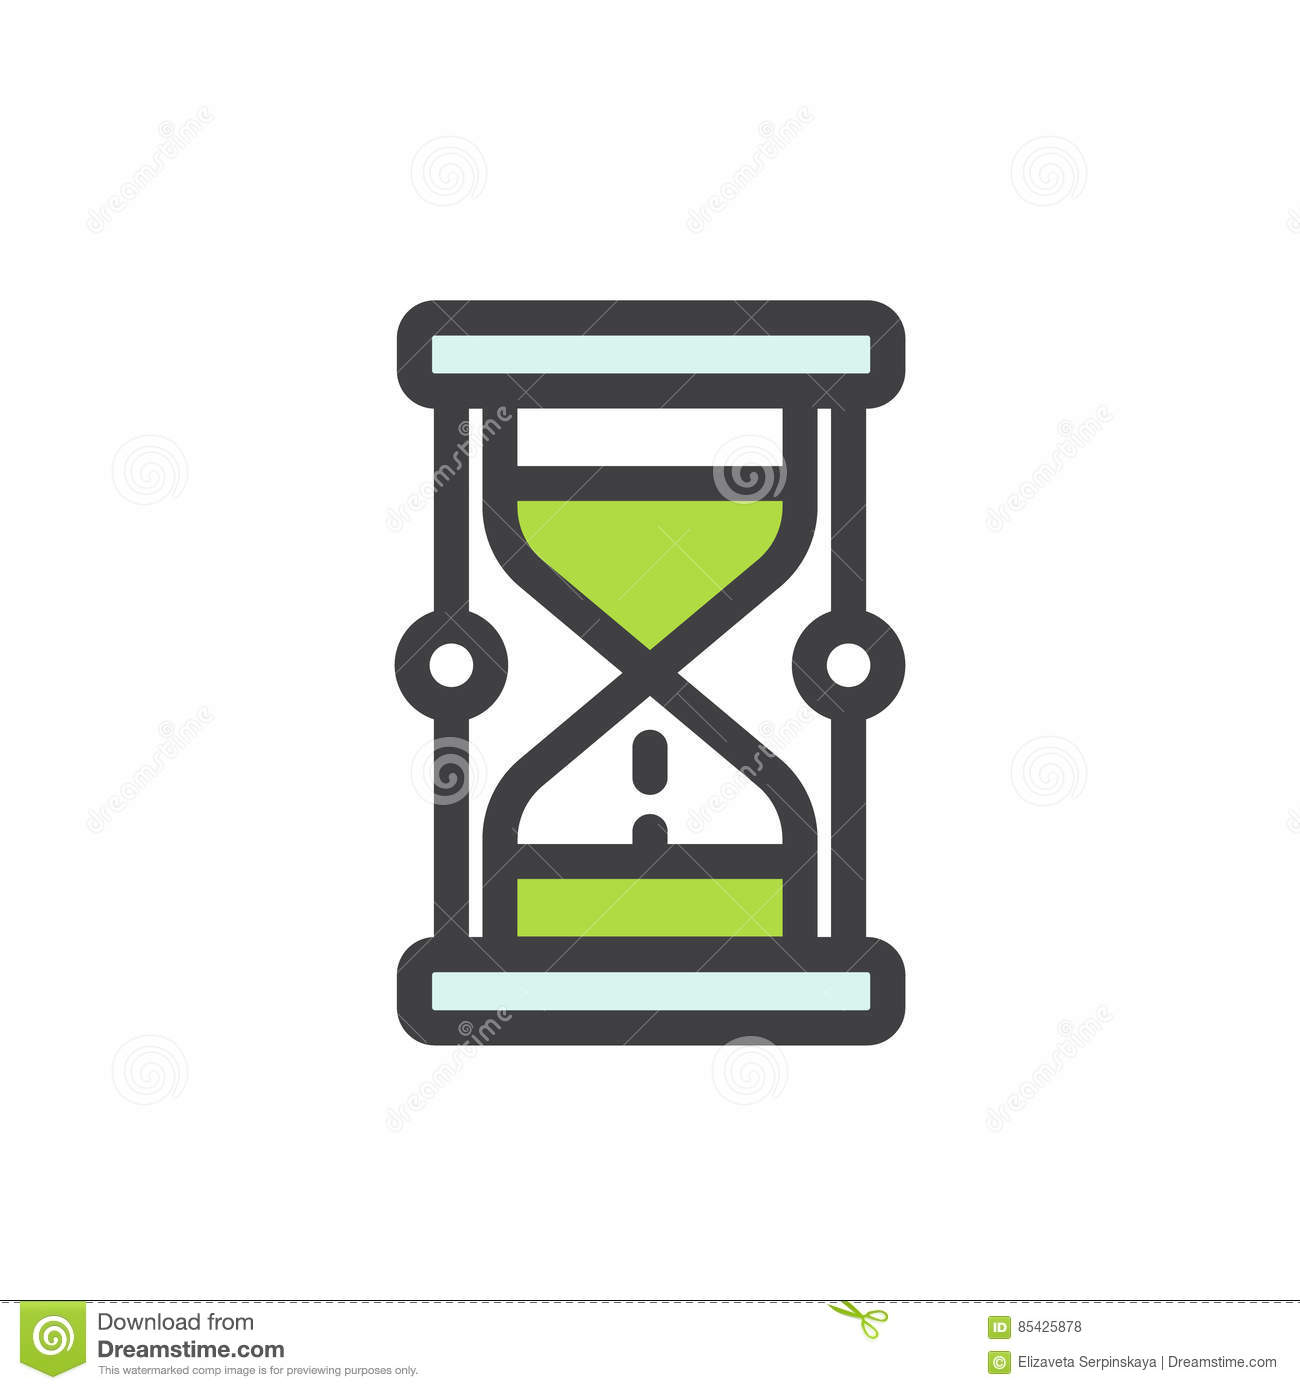 Concept Of Patience Deadline And Limit Stock Vector Illustration